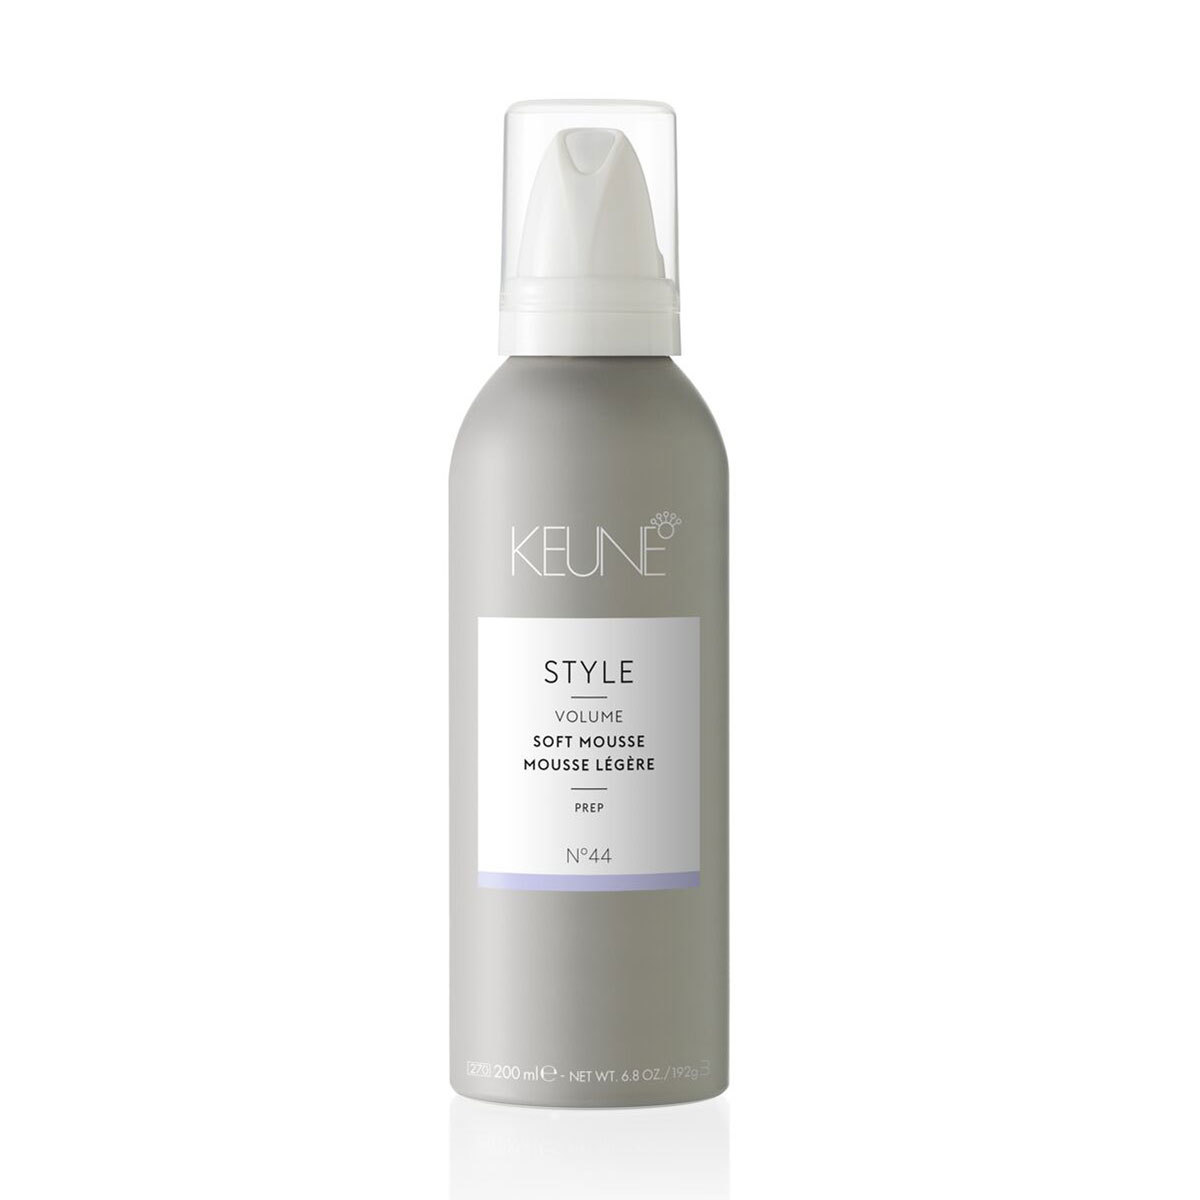 Retina 27c88f7e0892d5ed1897 795aaee41cb76552d70d 27422 keune style volume no44 soft mousse 200ml medium